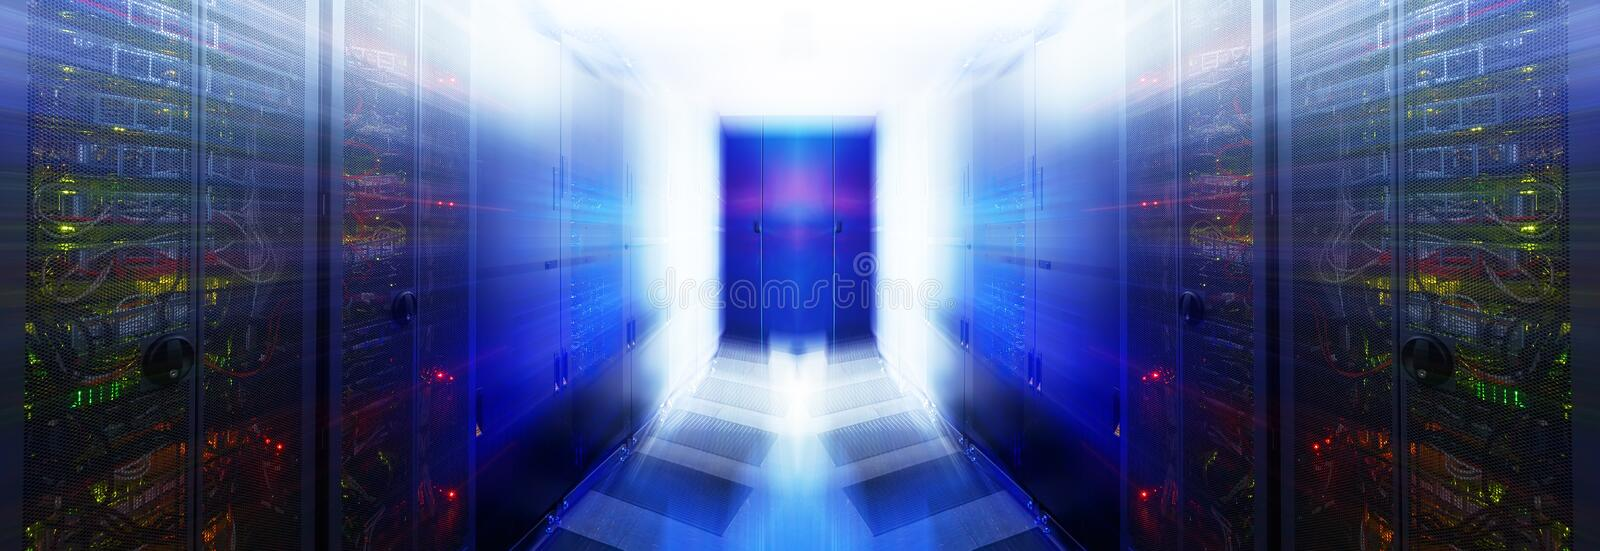 Abstract room with rows of server hardware in the data center. Abstract room with rows of server hardware in data center stock image